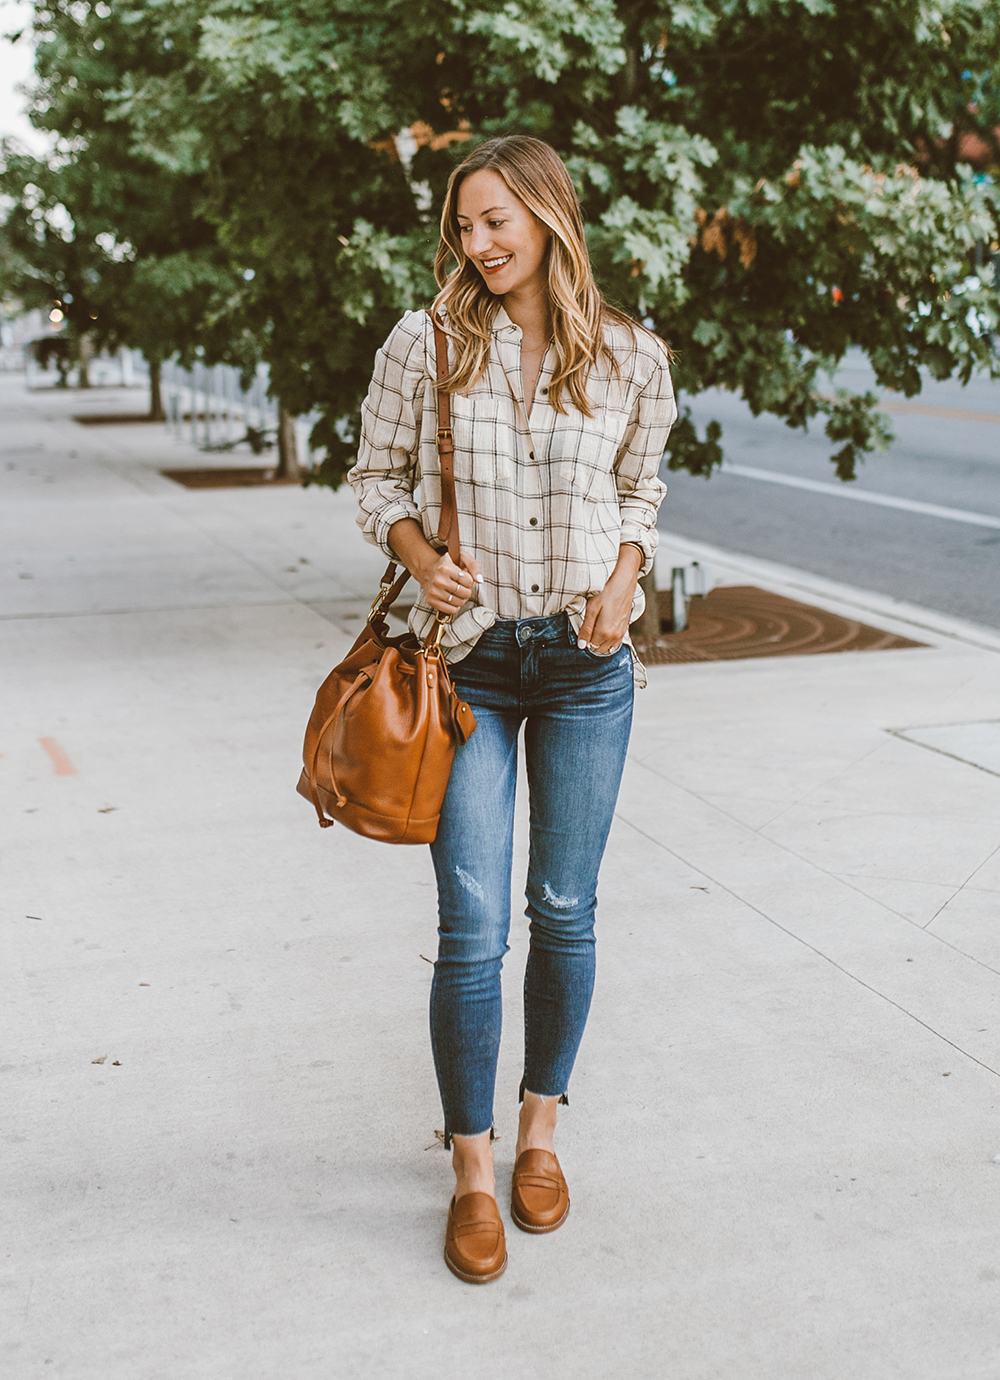 livvyland-blog-olivia-watson-austin-texas-fashion-style-blogger-nordstrom-anniversary-sale-1